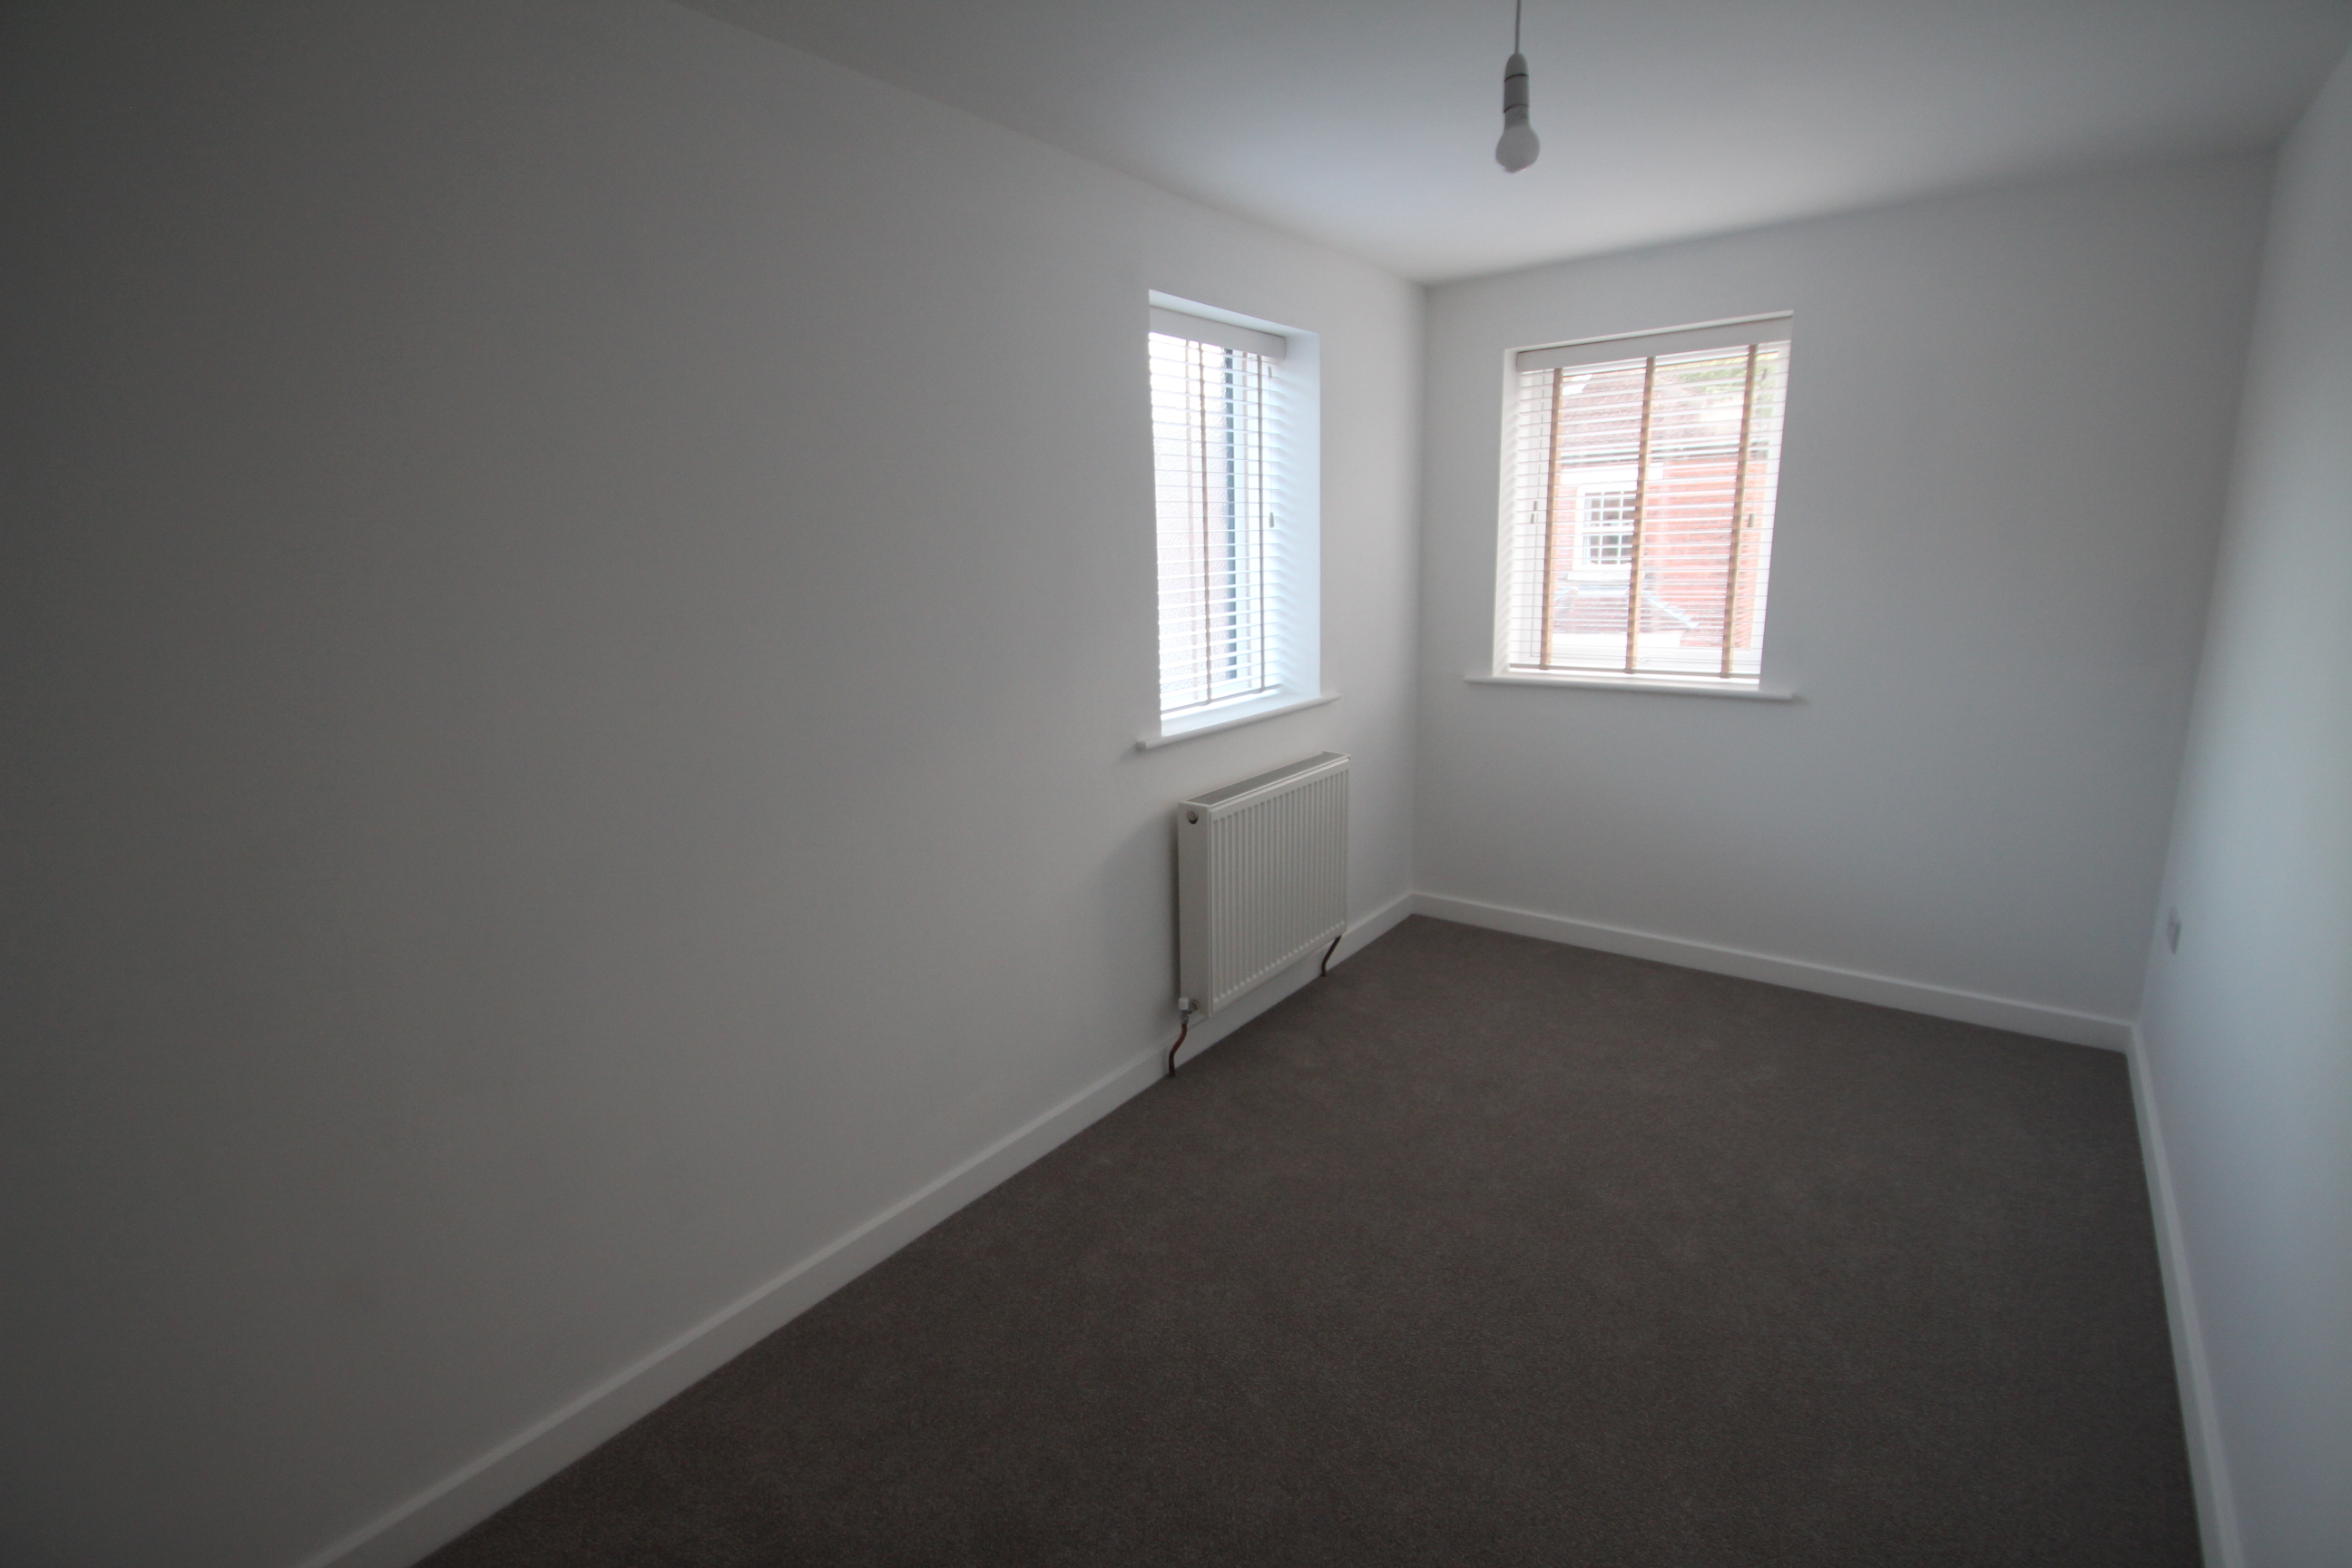 1a kent Road Southampton for sale